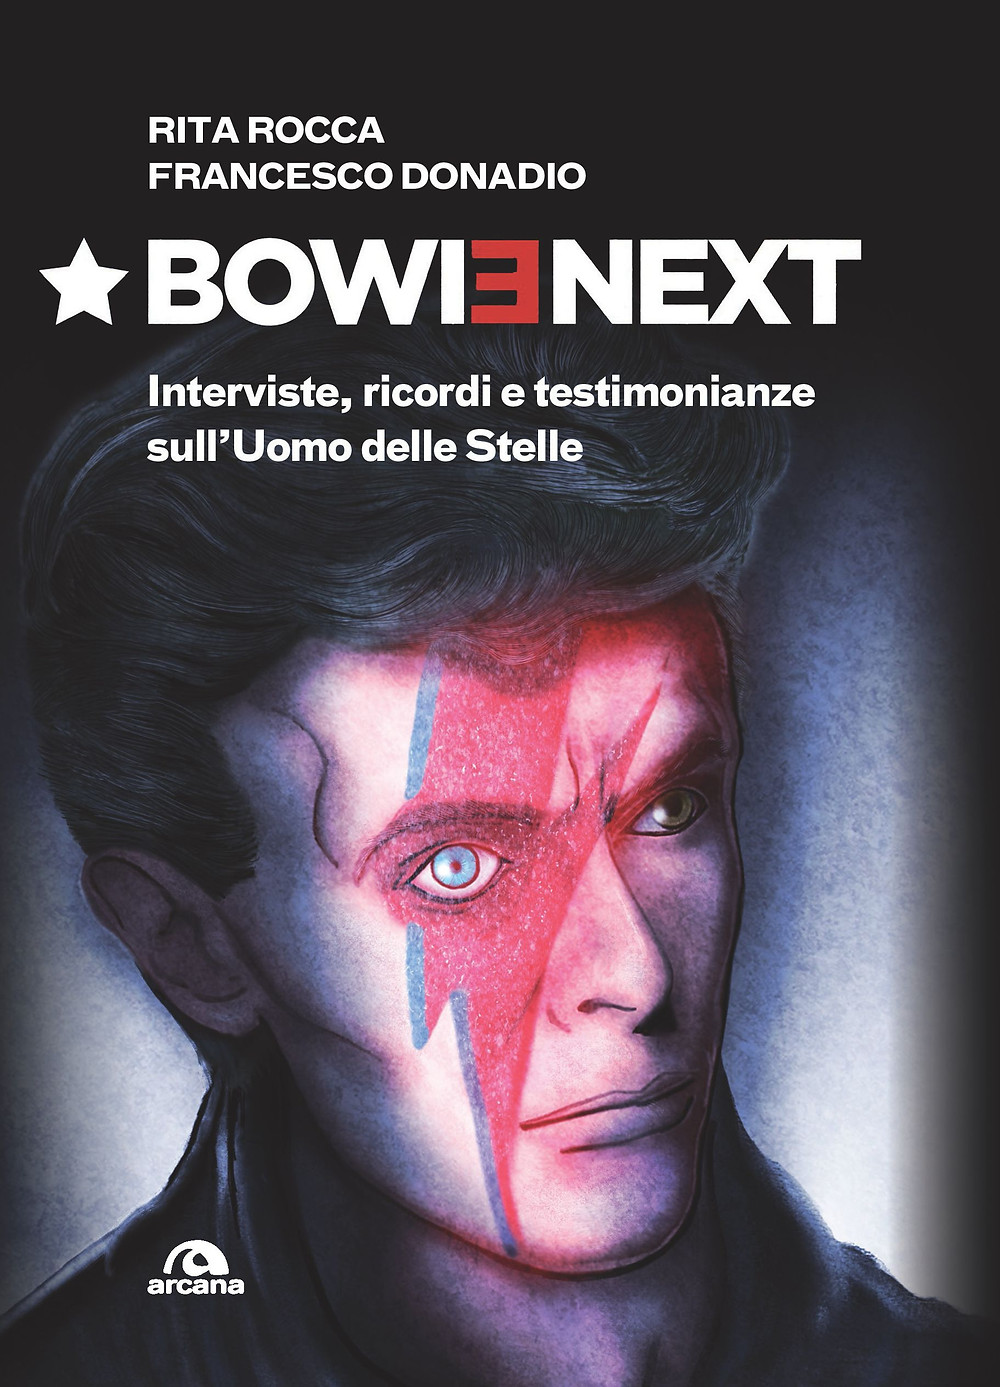 Bowienext, the book